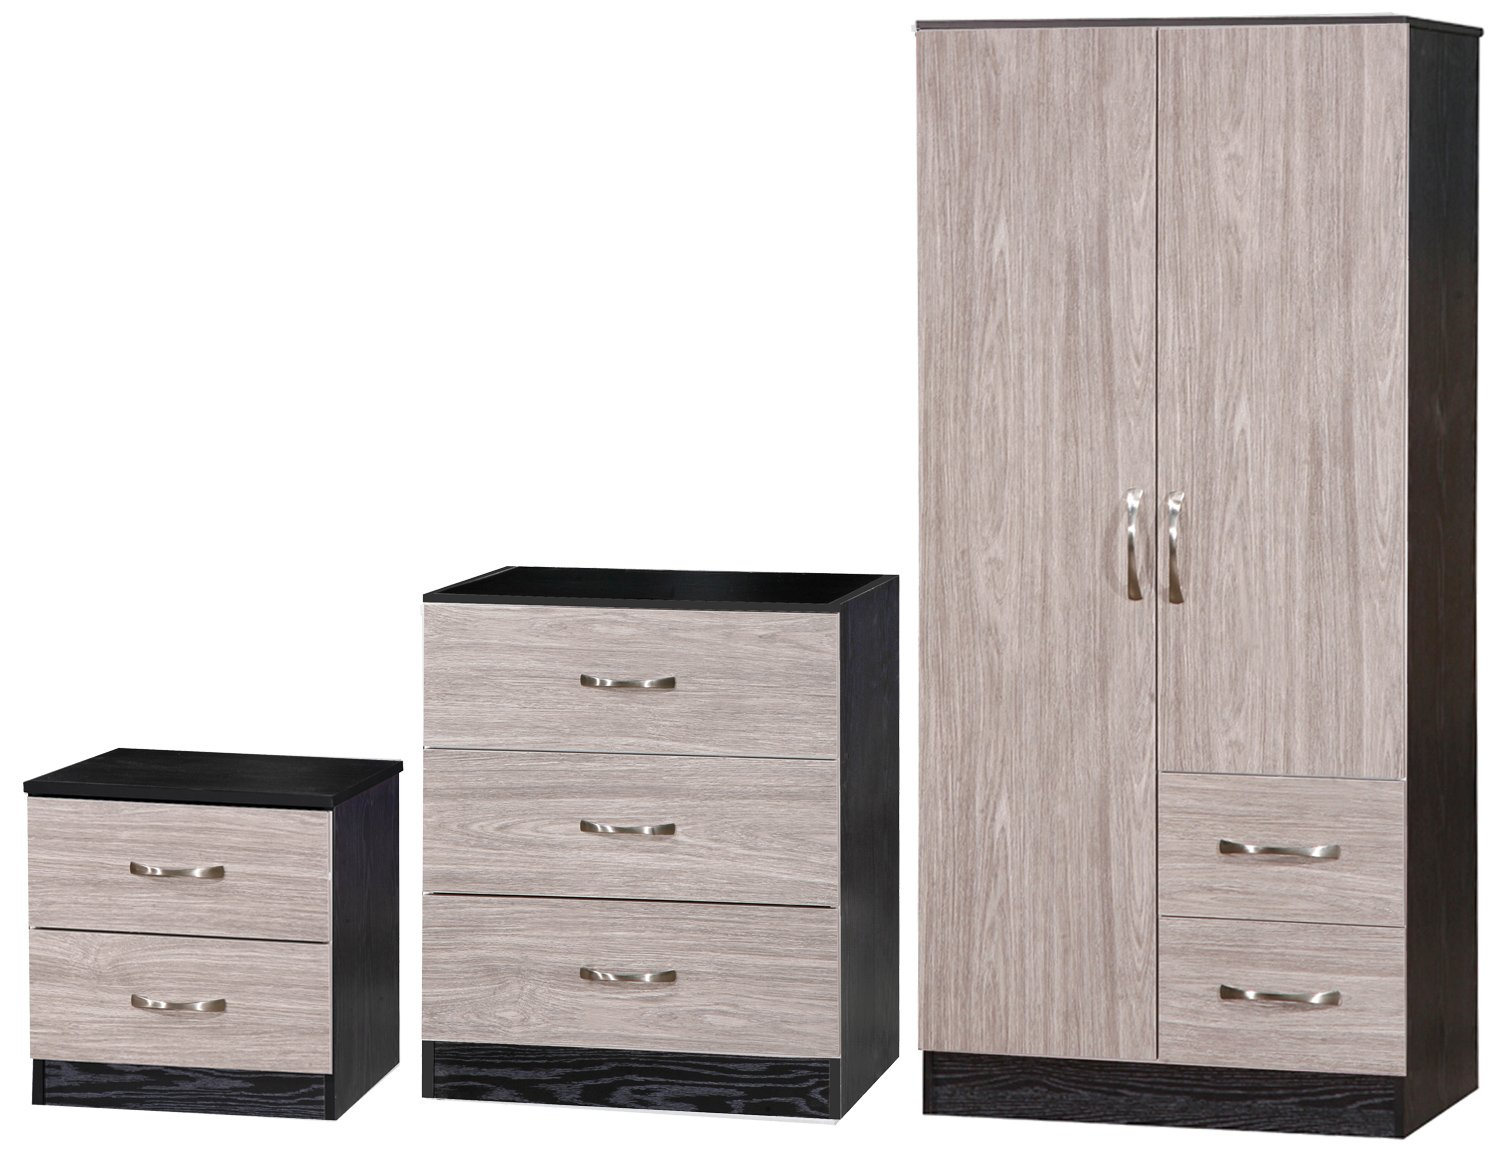 Marina Bedside/Chest/Combi Wardrobe Set, Wood, Grey/Black, 46.5 x 76 x 180.5 cm MR-GRY01053SET